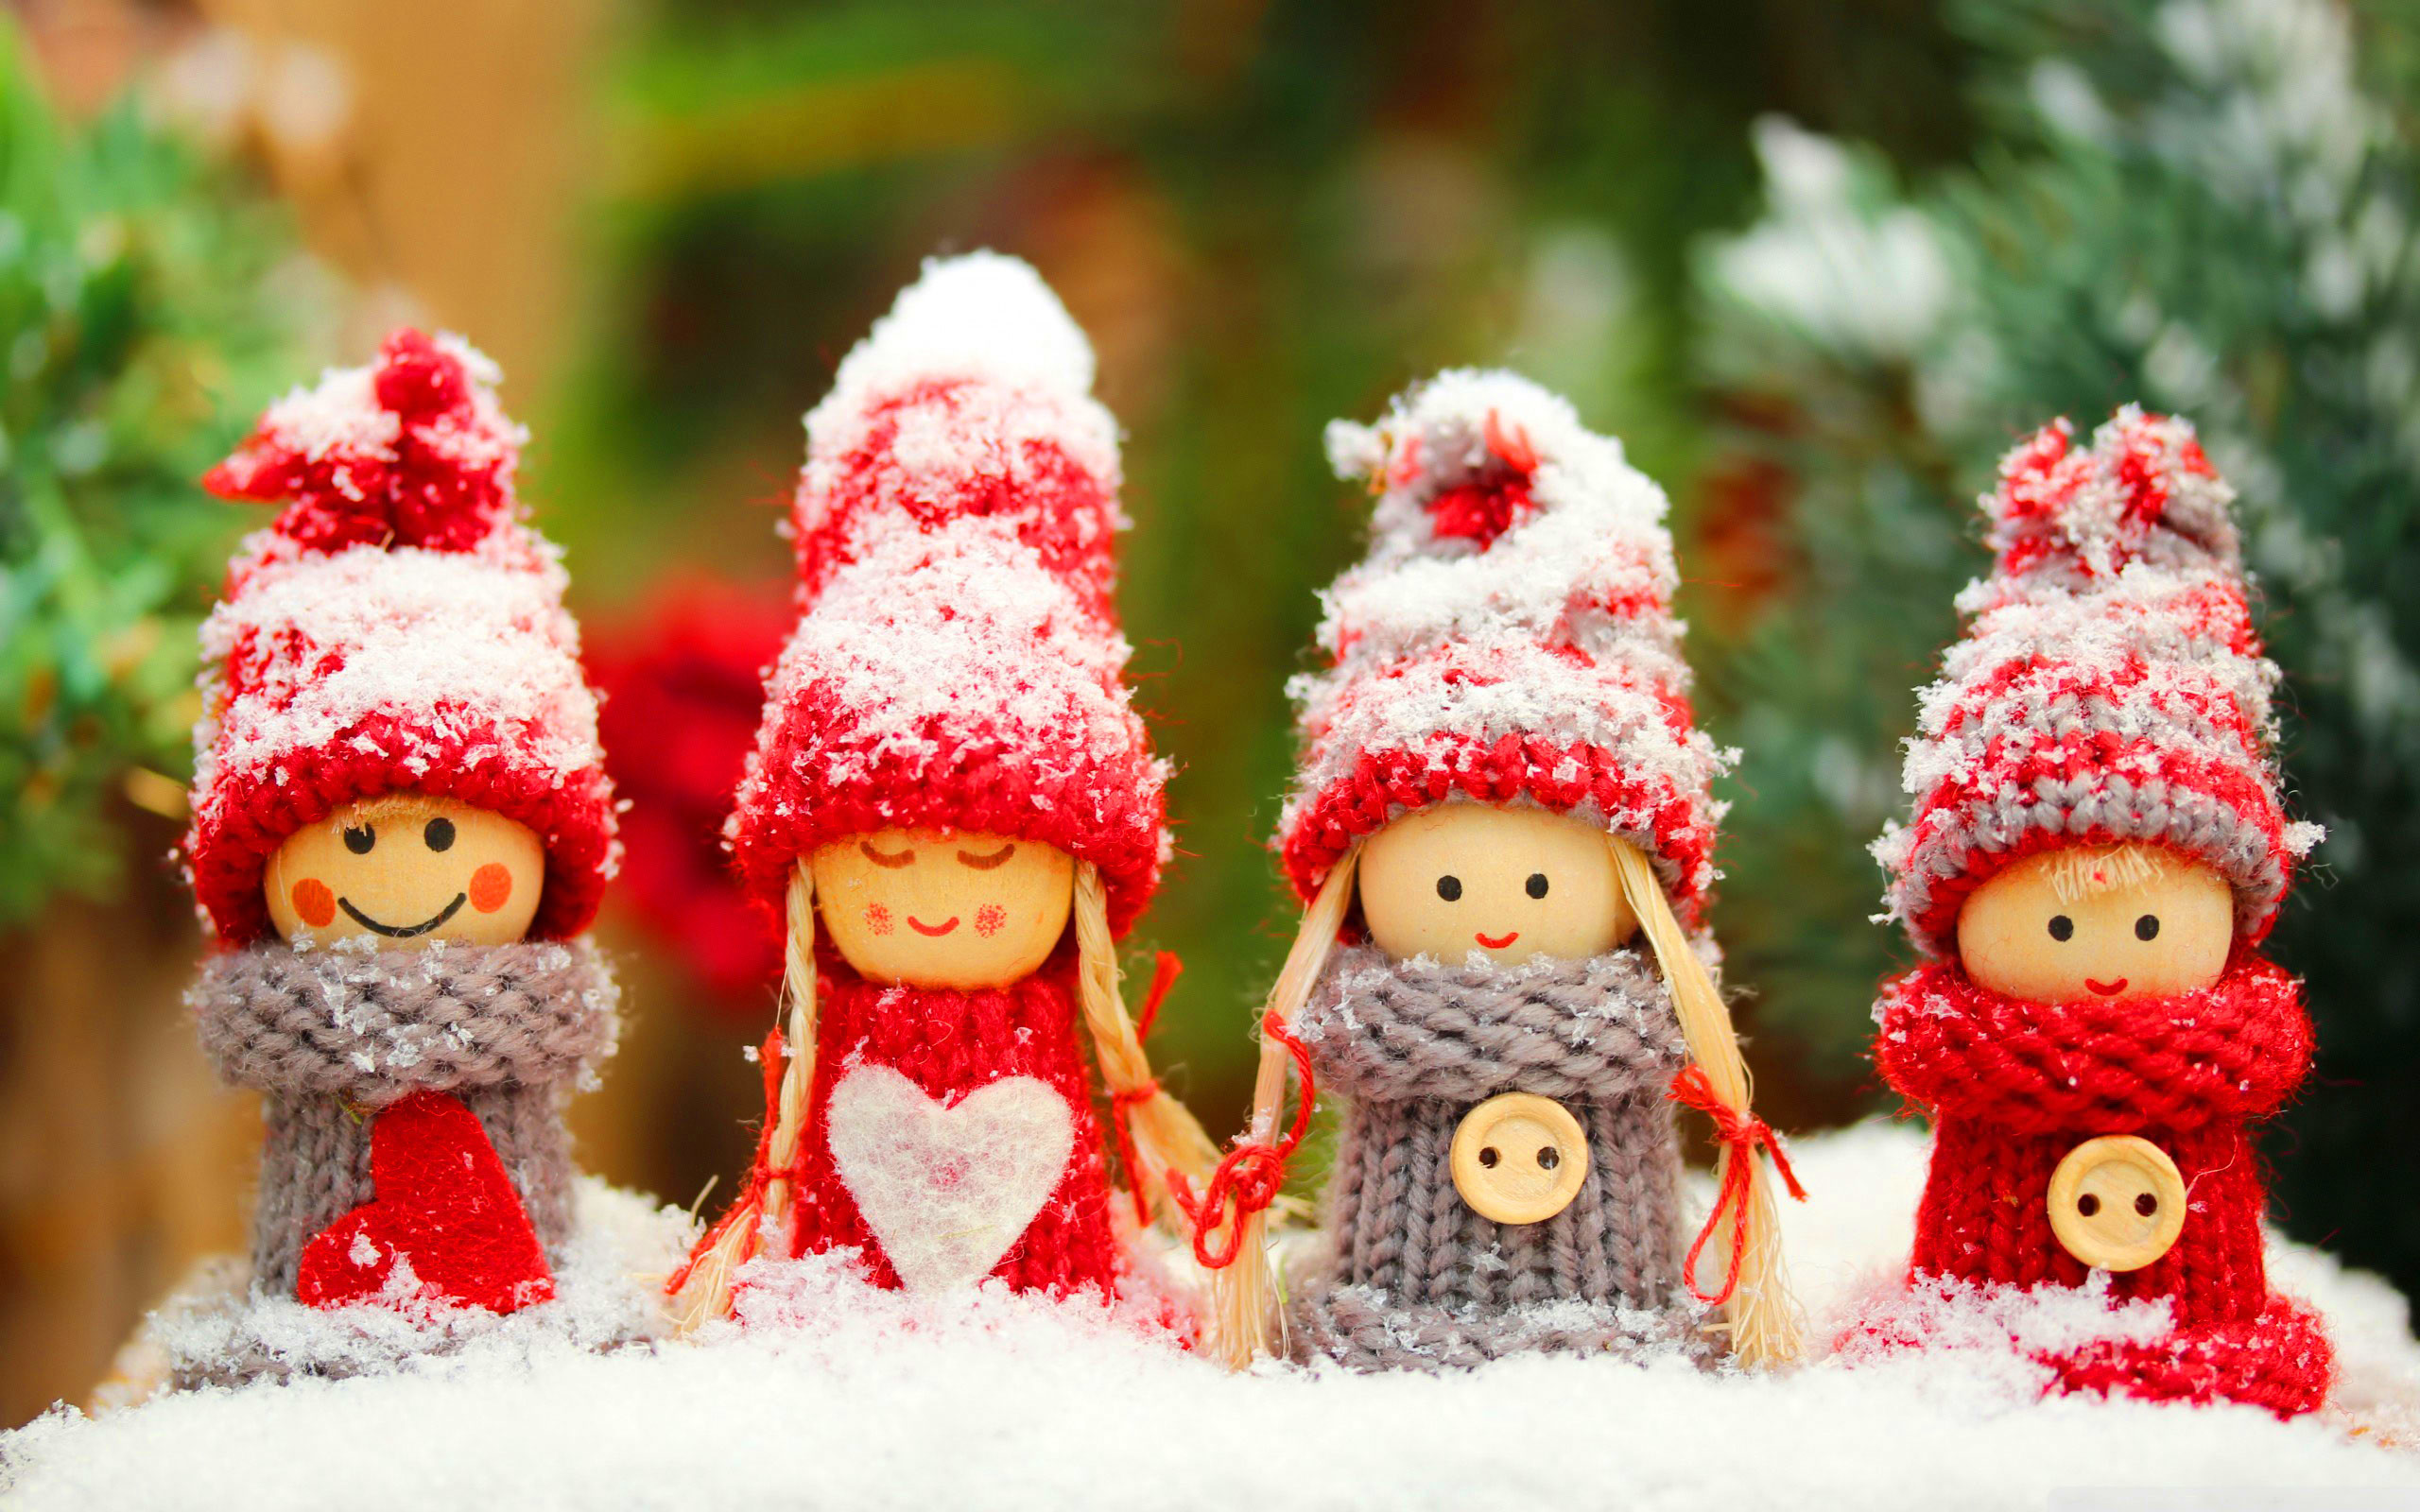 2560x1600 Free Cute Christmas Winter Dolls, computer desktop wallpapers, pictures,  images